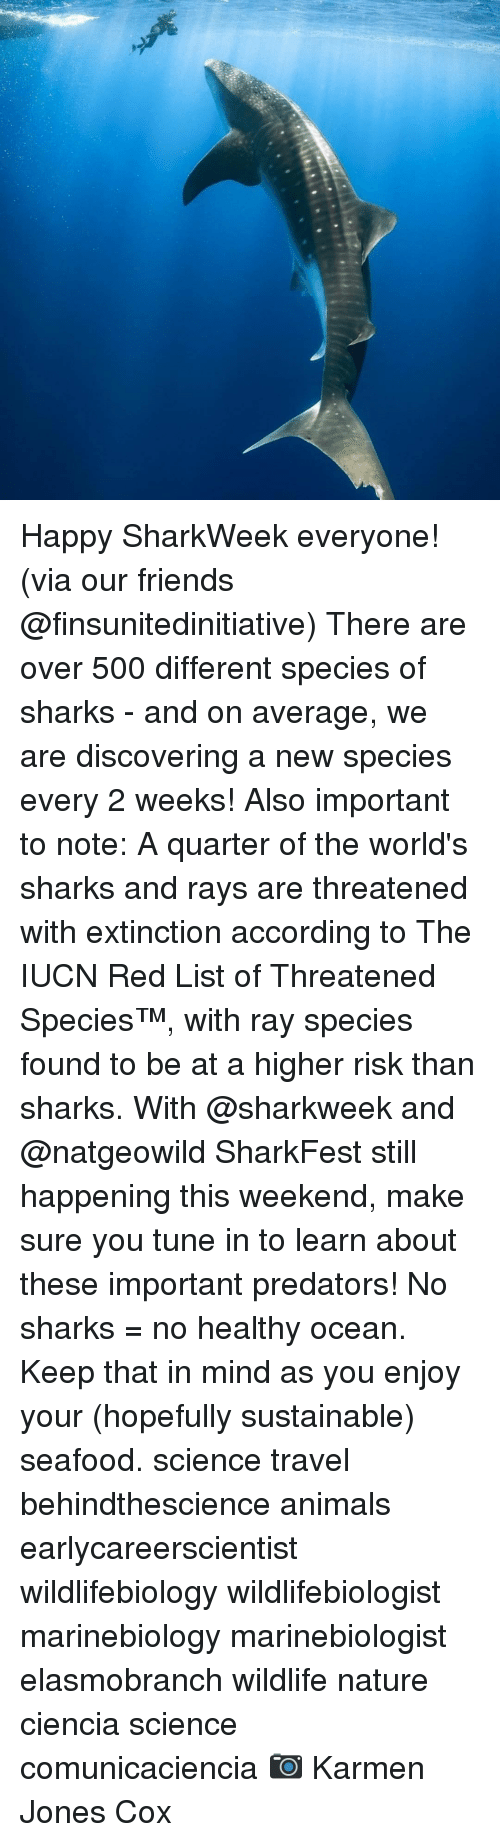 Animals, Friends, and Memes: Happy SharkWeek everyone! (via our friends @finsunitedinitiative) There are over 500 different species of sharks - and on average, we are discovering a new species every 2 weeks! Also important to note: A quarter of the world's sharks and rays are threatened with extinction according to The IUCN Red List of Threatened Species™, with ray species found to be at a higher risk than sharks. With @sharkweek and @natgeowild SharkFest still happening this weekend, make sure you tune in to learn about these important predators! No sharks = no healthy ocean. Keep that in mind as you enjoy your (hopefully sustainable) seafood. science travel behindthescience animals earlycareerscientist wildlifebiology wildlifebiologist marinebiology marinebiologist elasmobranch wildlife nature ciencia science comunicaciencia 📷 Karmen Jones Cox